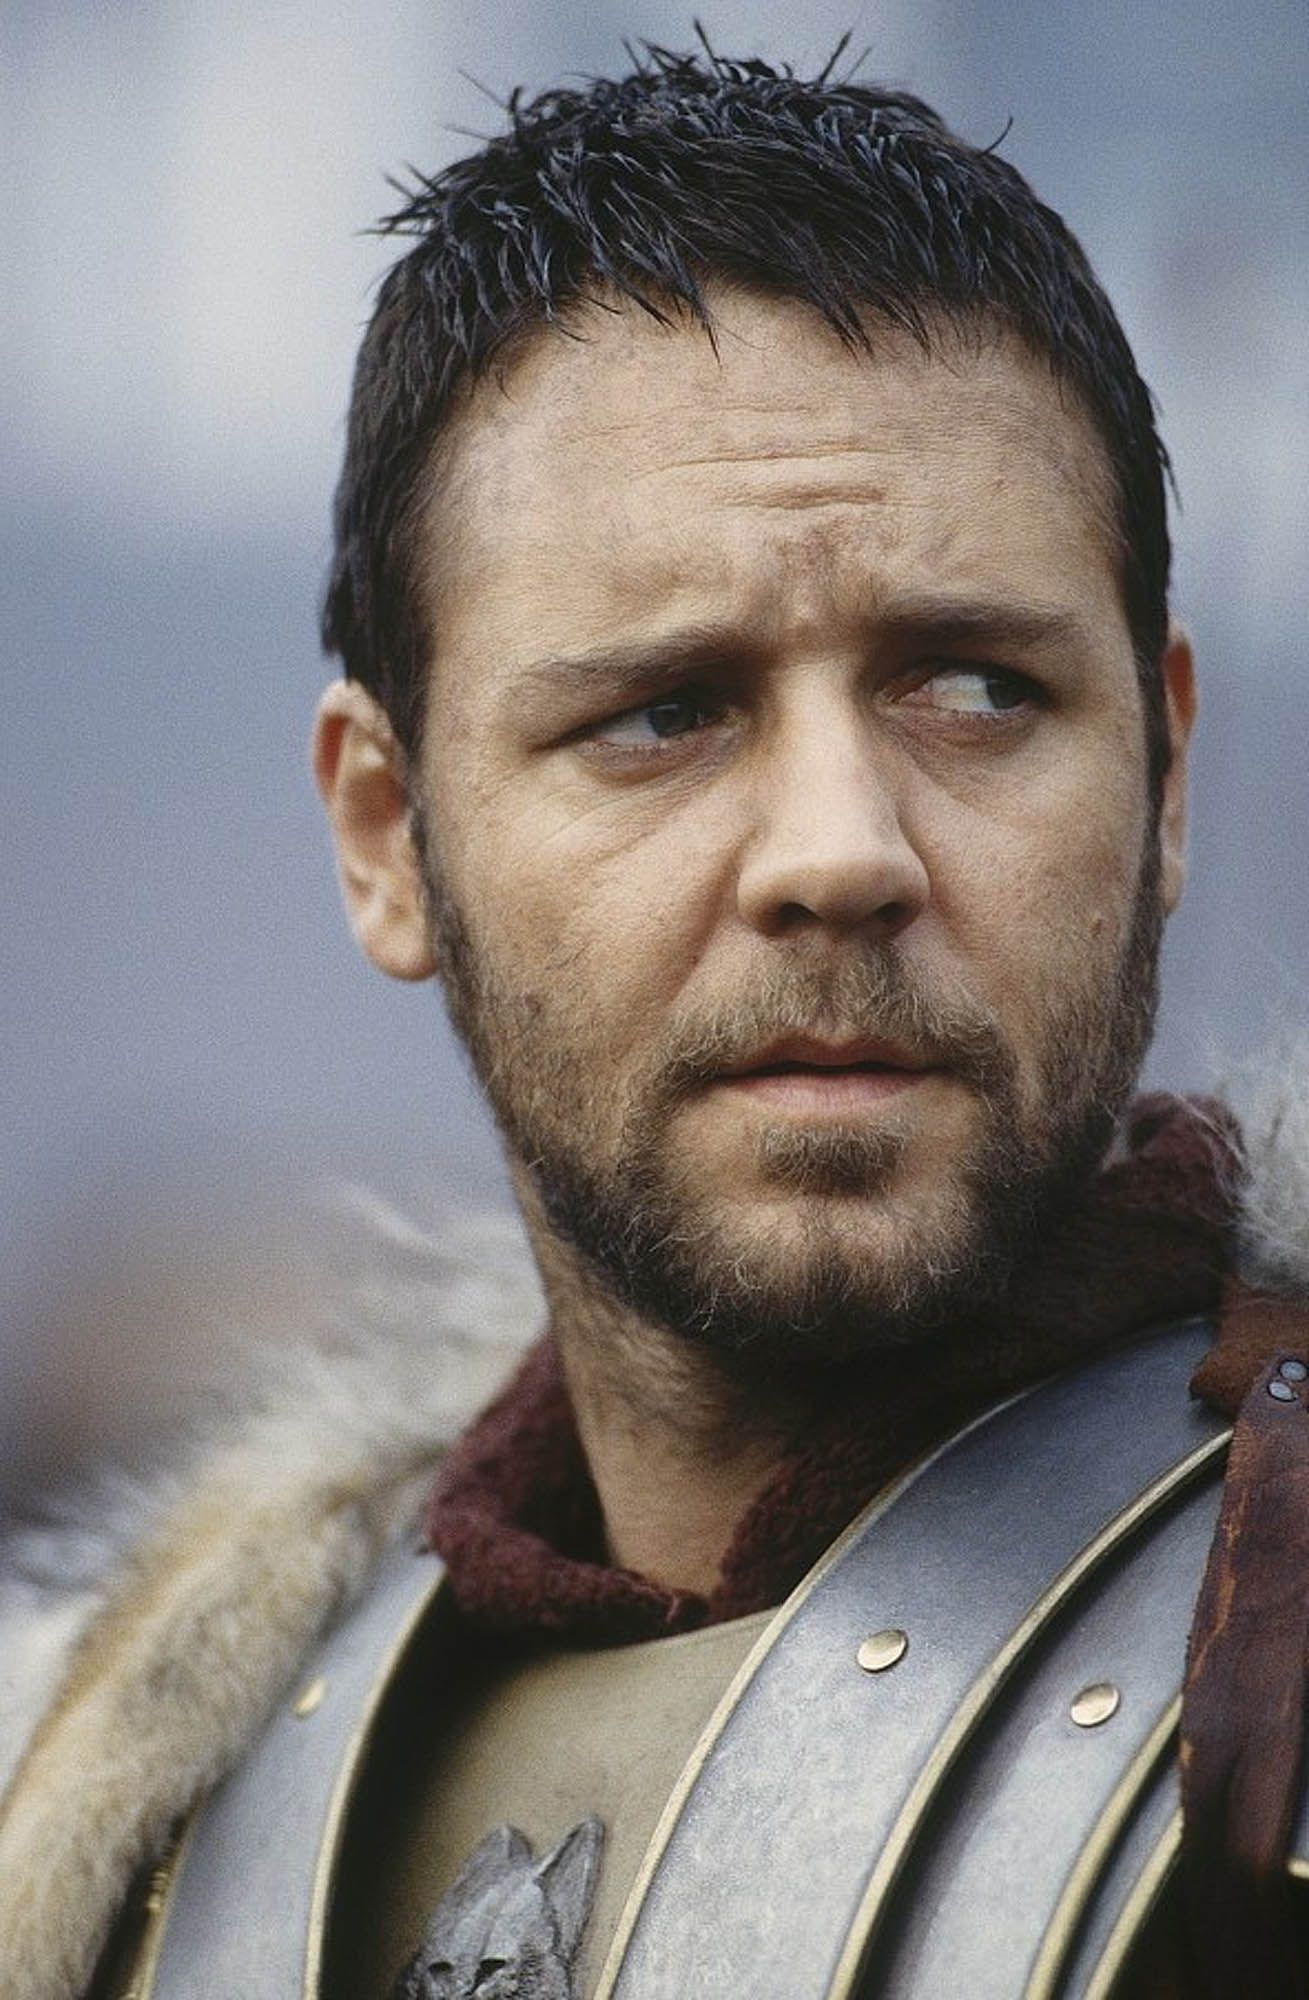 Russell Crowe playing Maximus Decimus Meridius from the